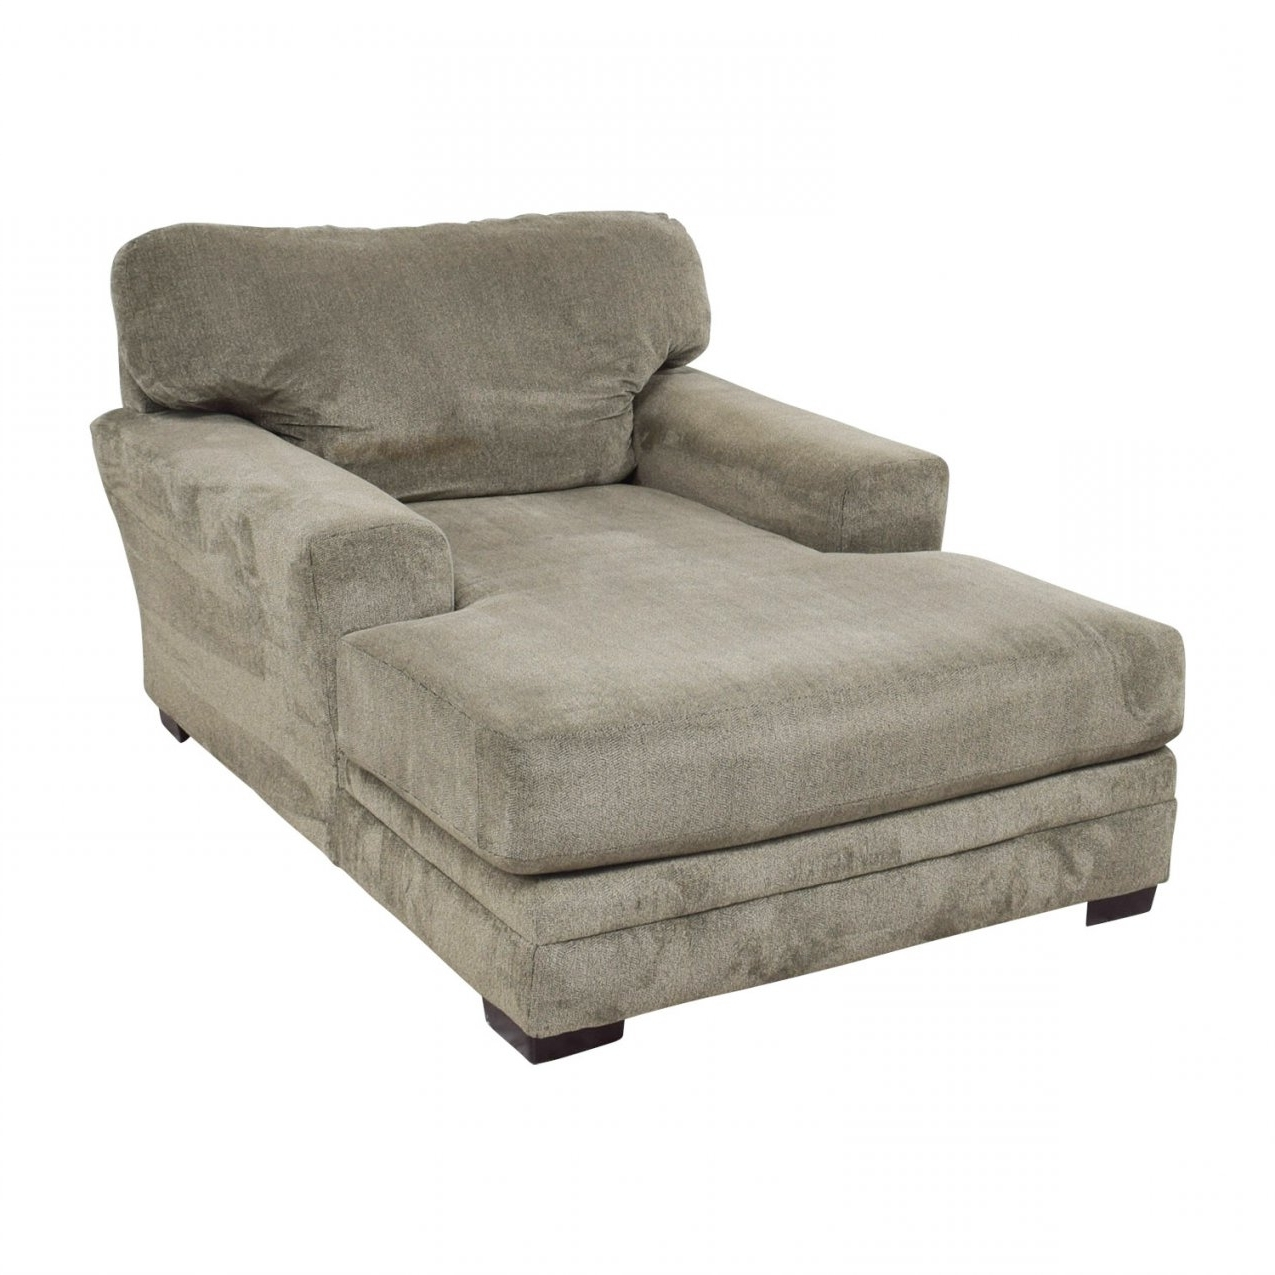 Off – Bob's Furniture Bob's Furniture Grey Chaise Lounge / Sofas Regarding Most Recently Released Bobs Furniture Chaises (View 15 of 15)